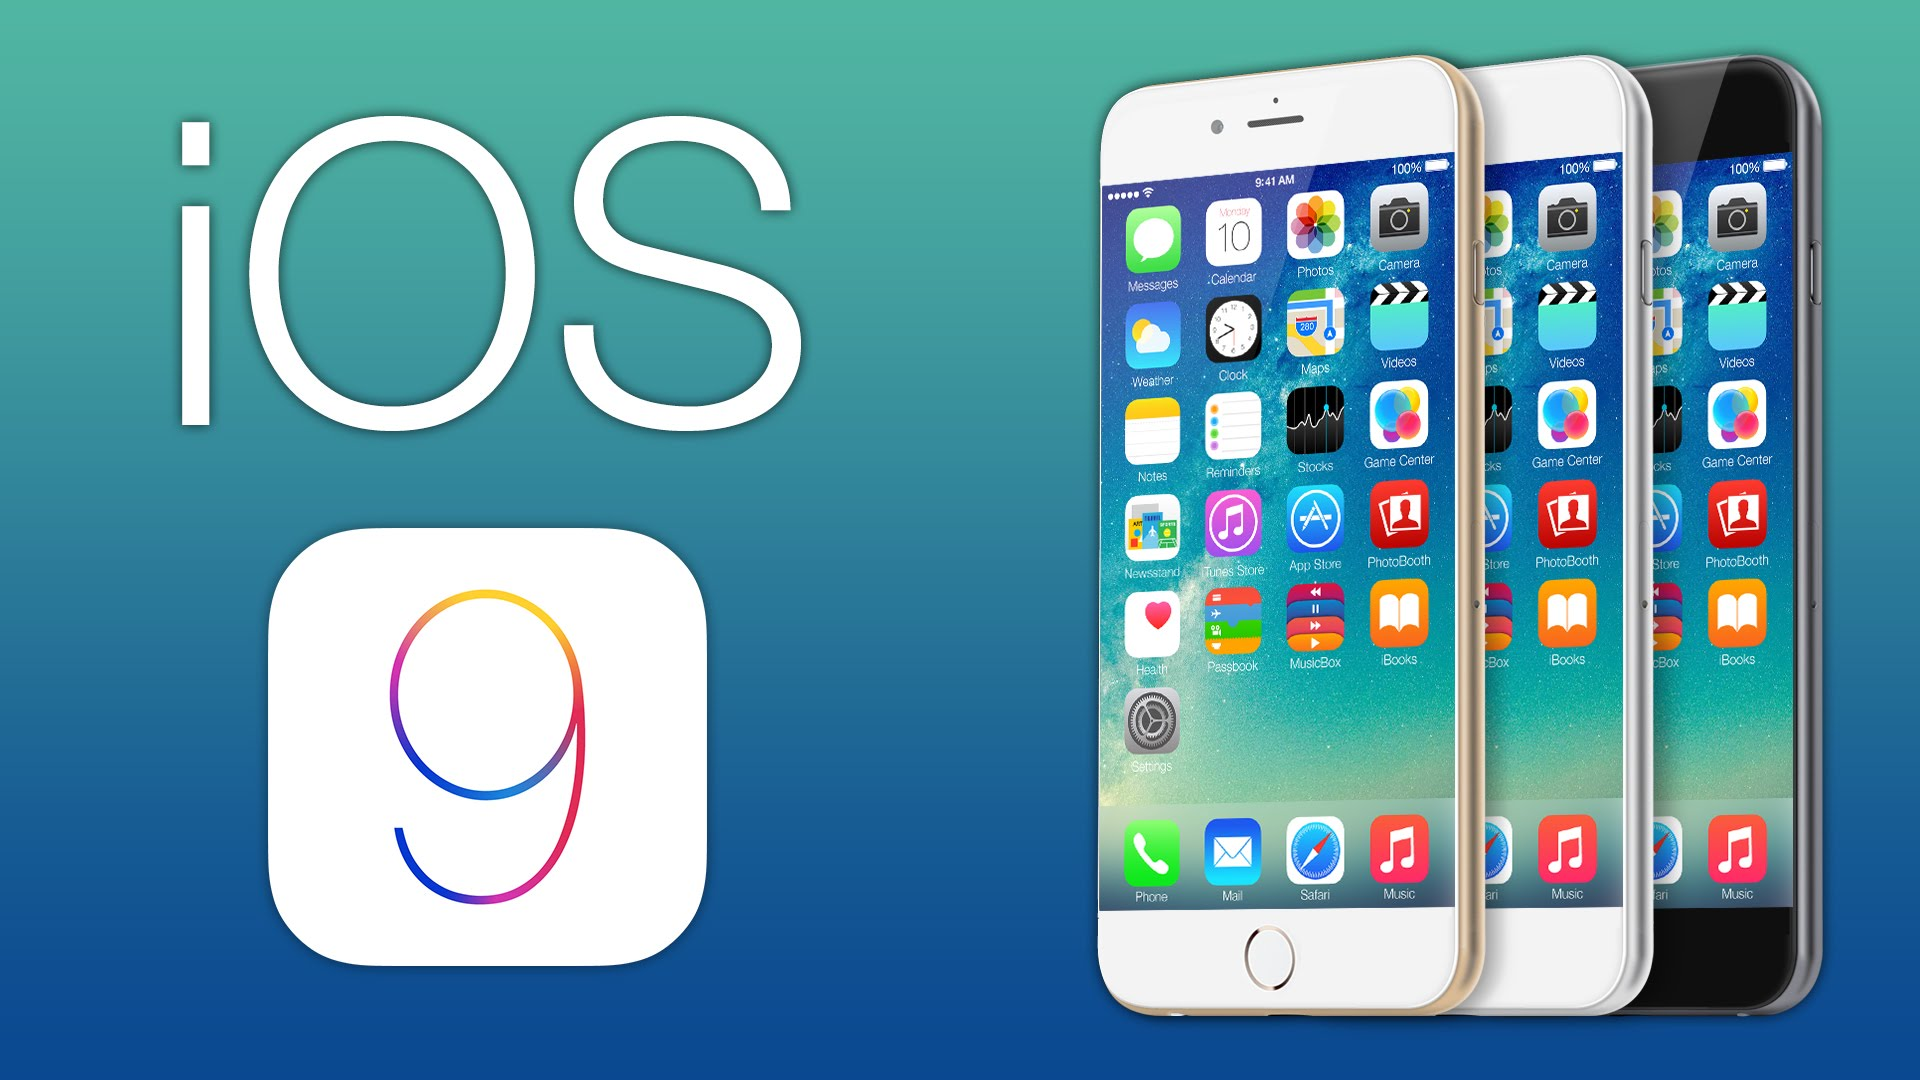 Glimpse of hidden features of iOS 9